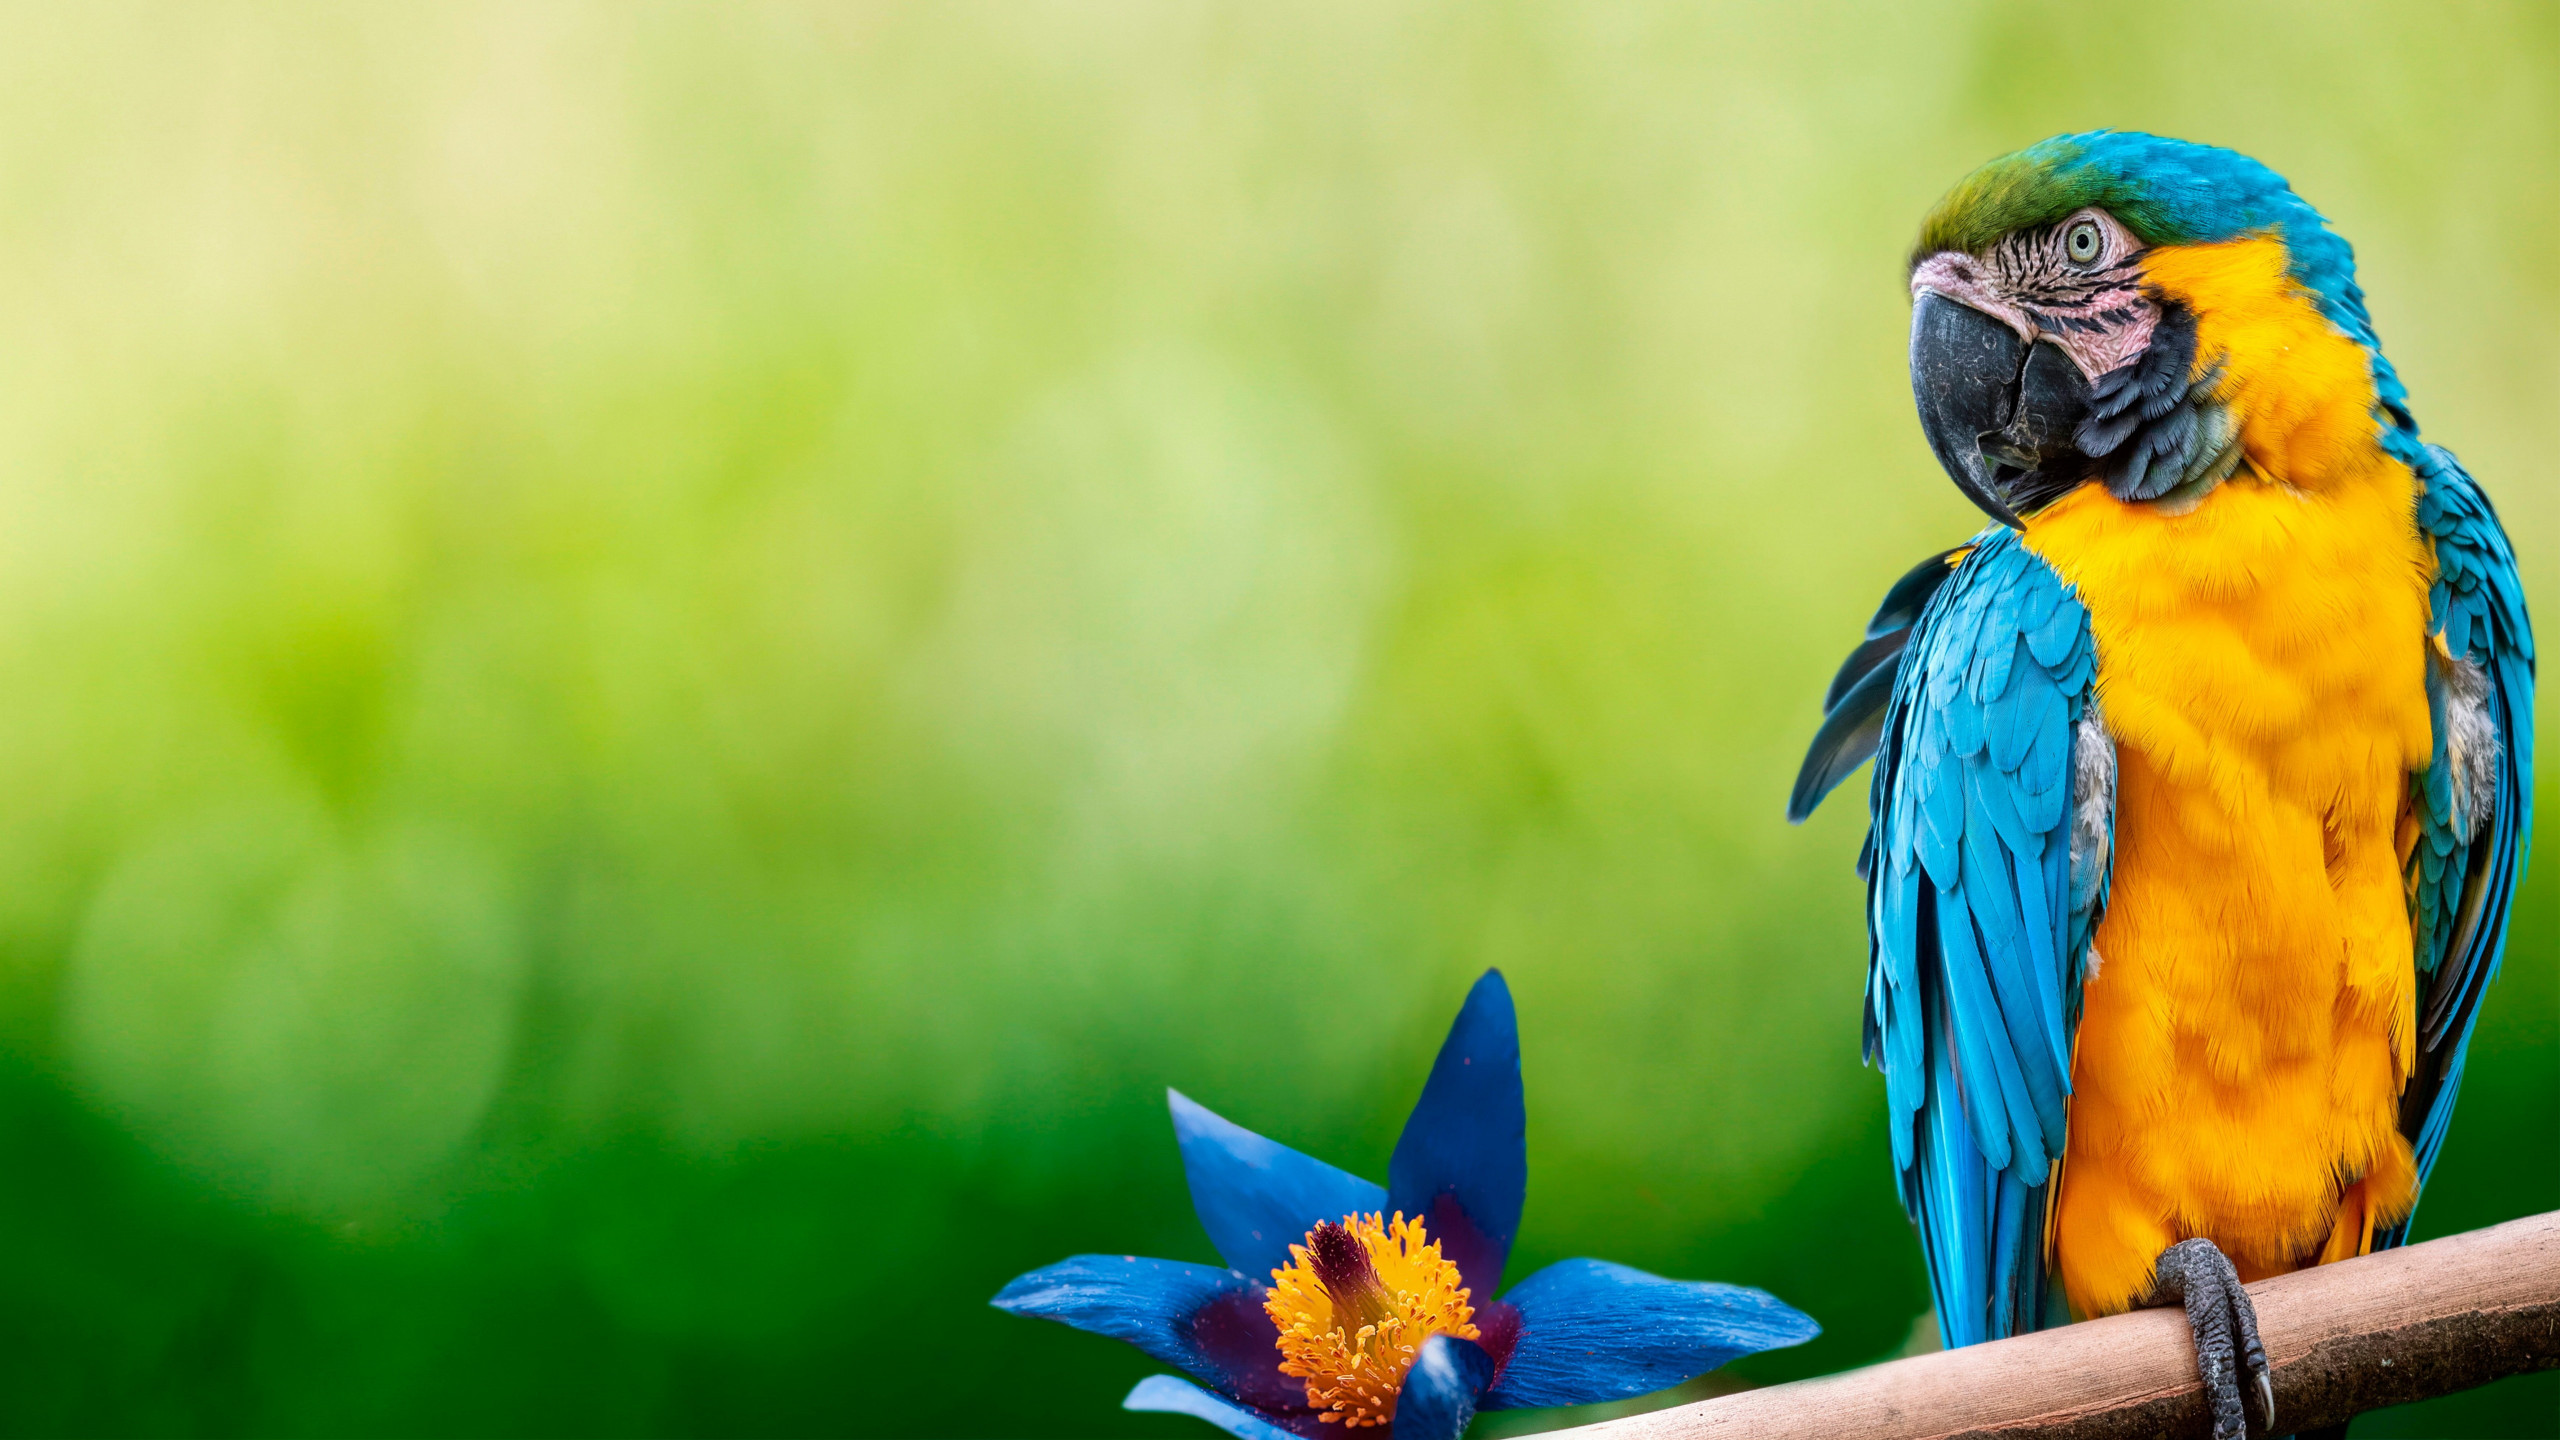 Beautiful Macaw parrot wallpaper 2560x1440